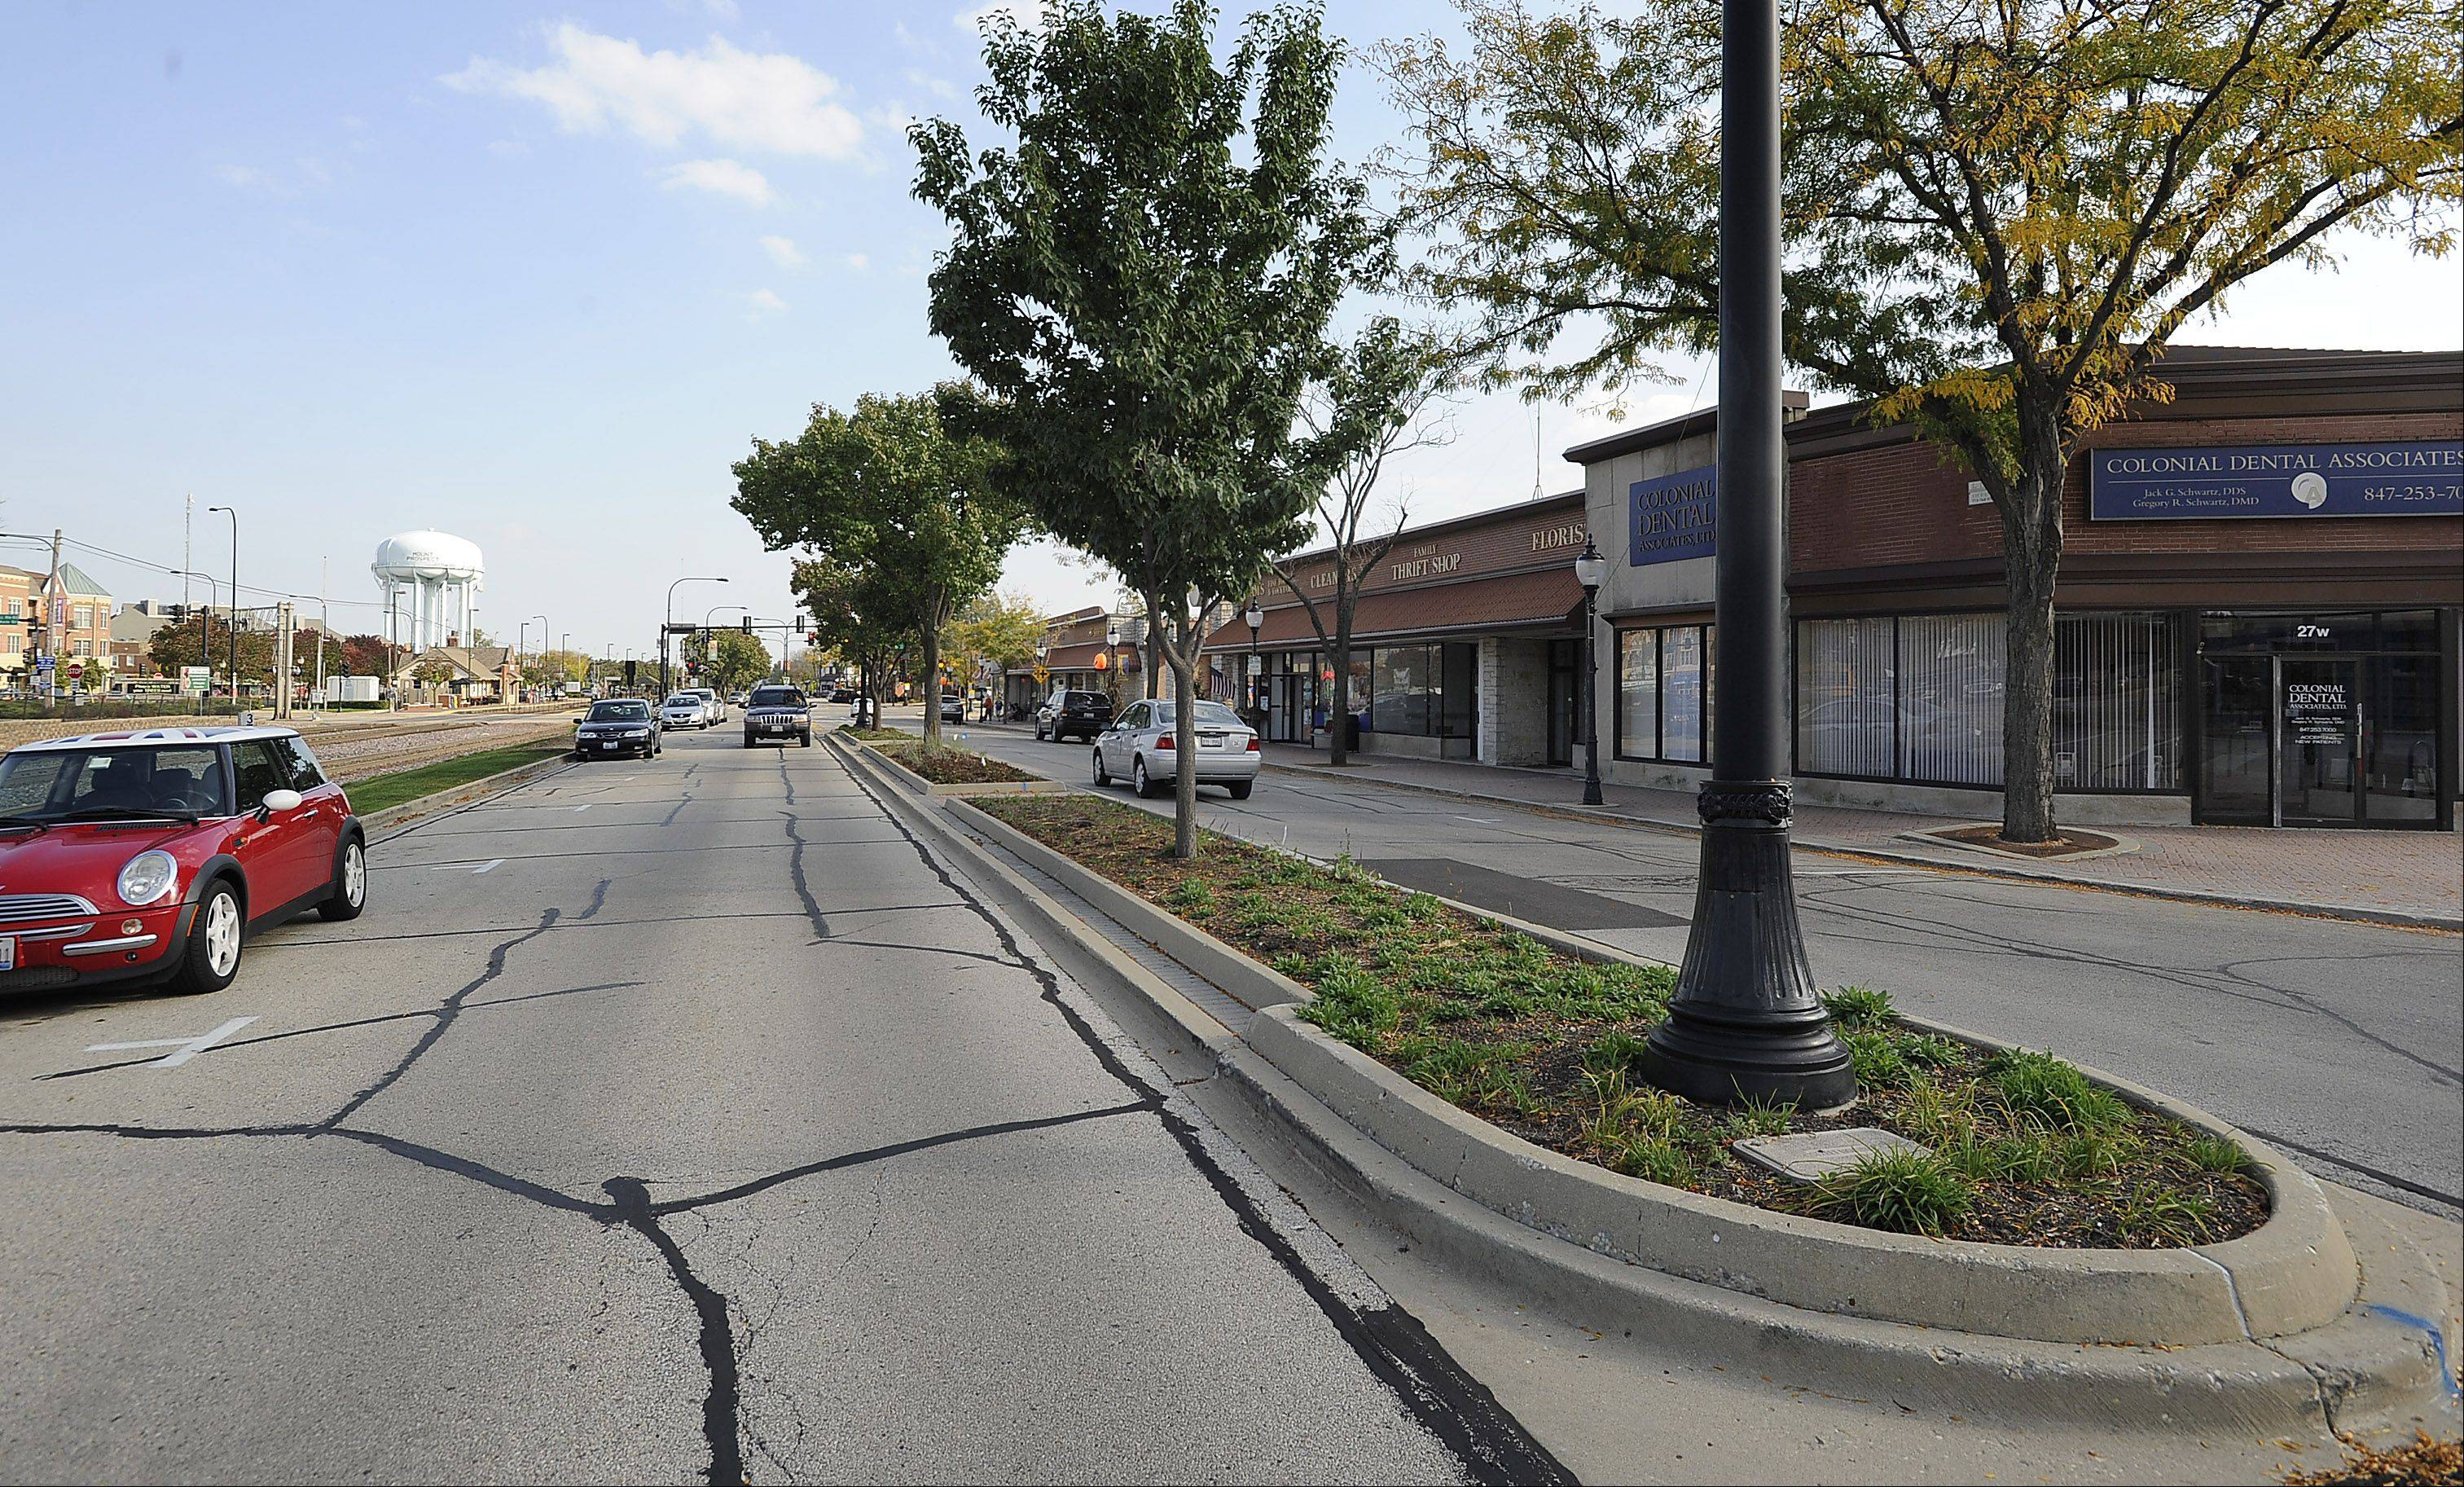 Prospect Avenue south of the tracks with its landscaped median and small shops.